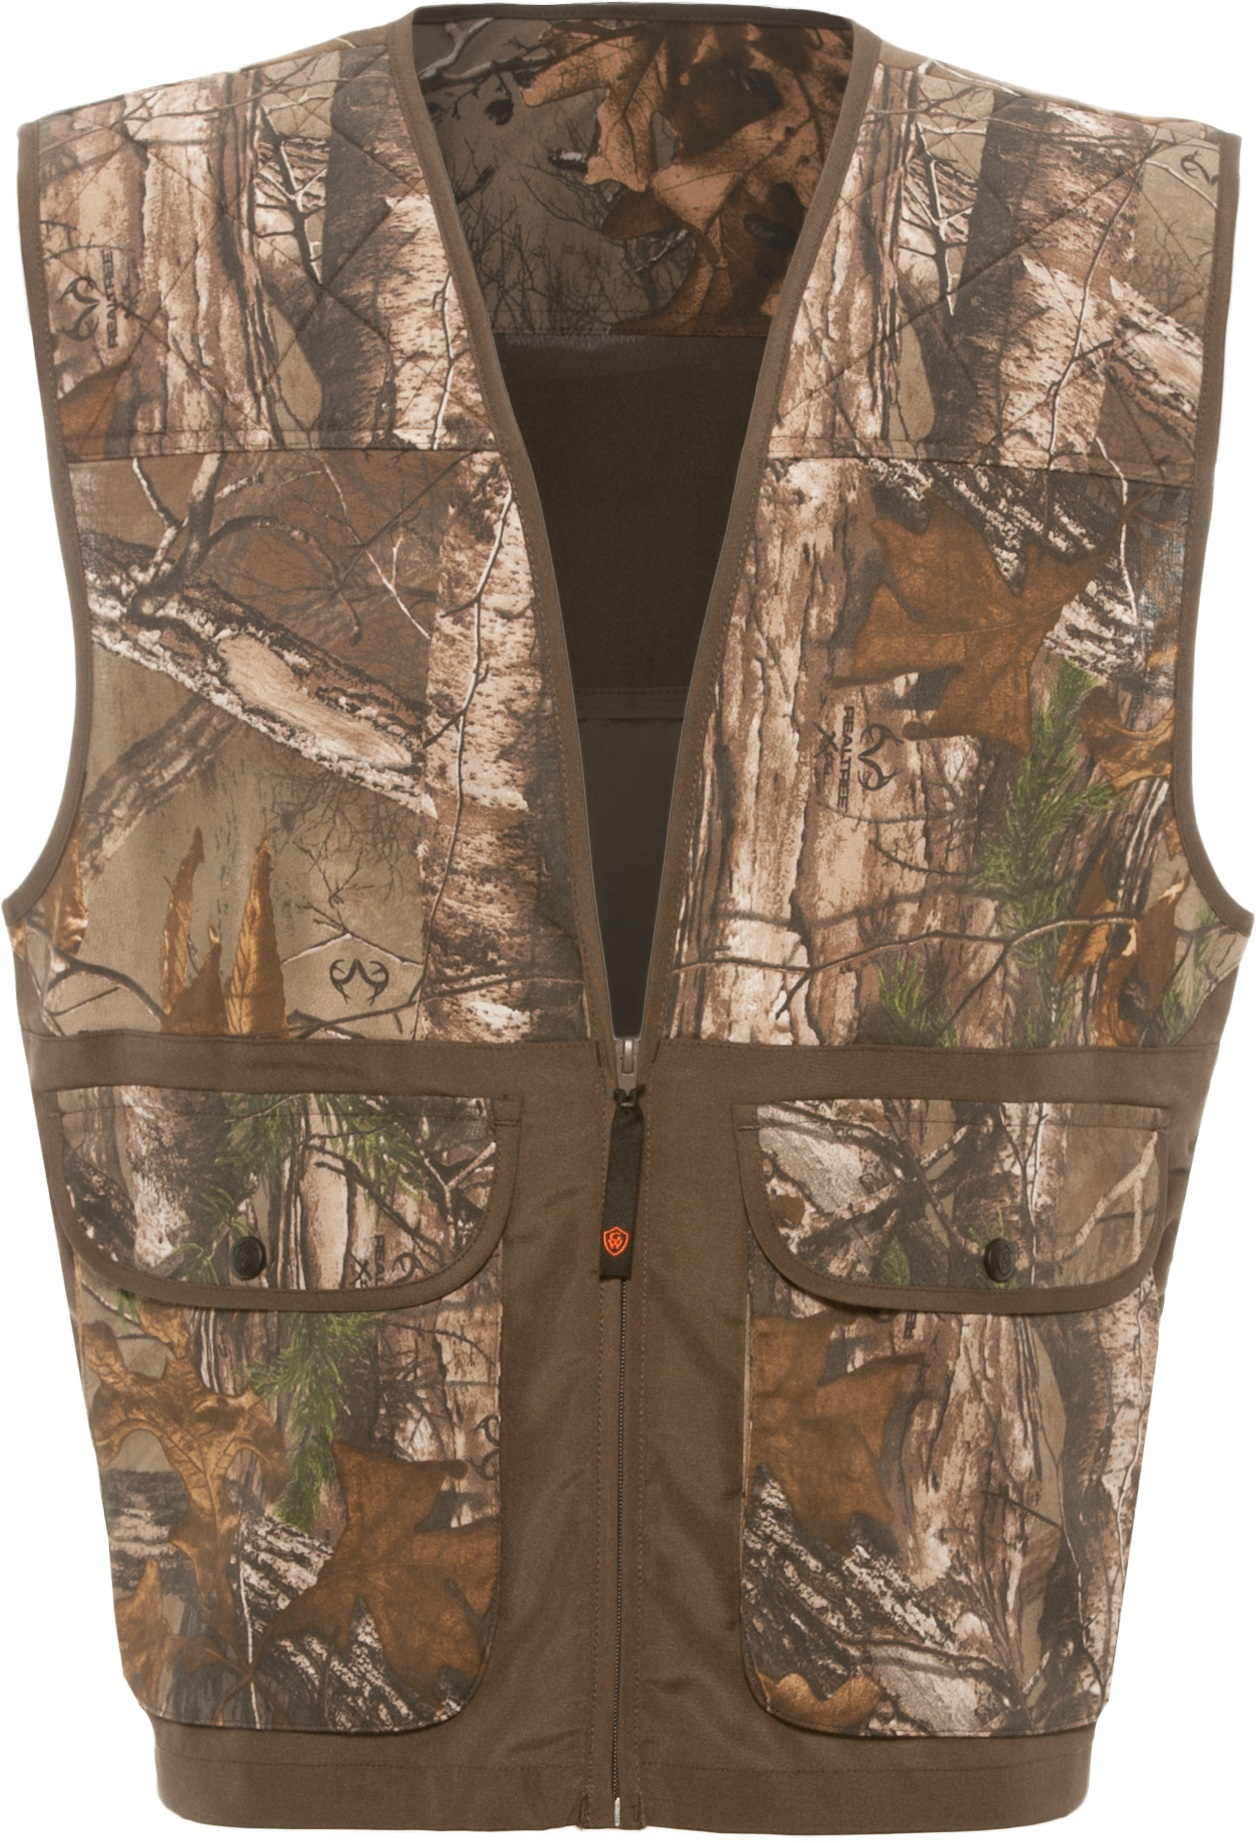 Game Winner Men S Game Vest Realtree Camo